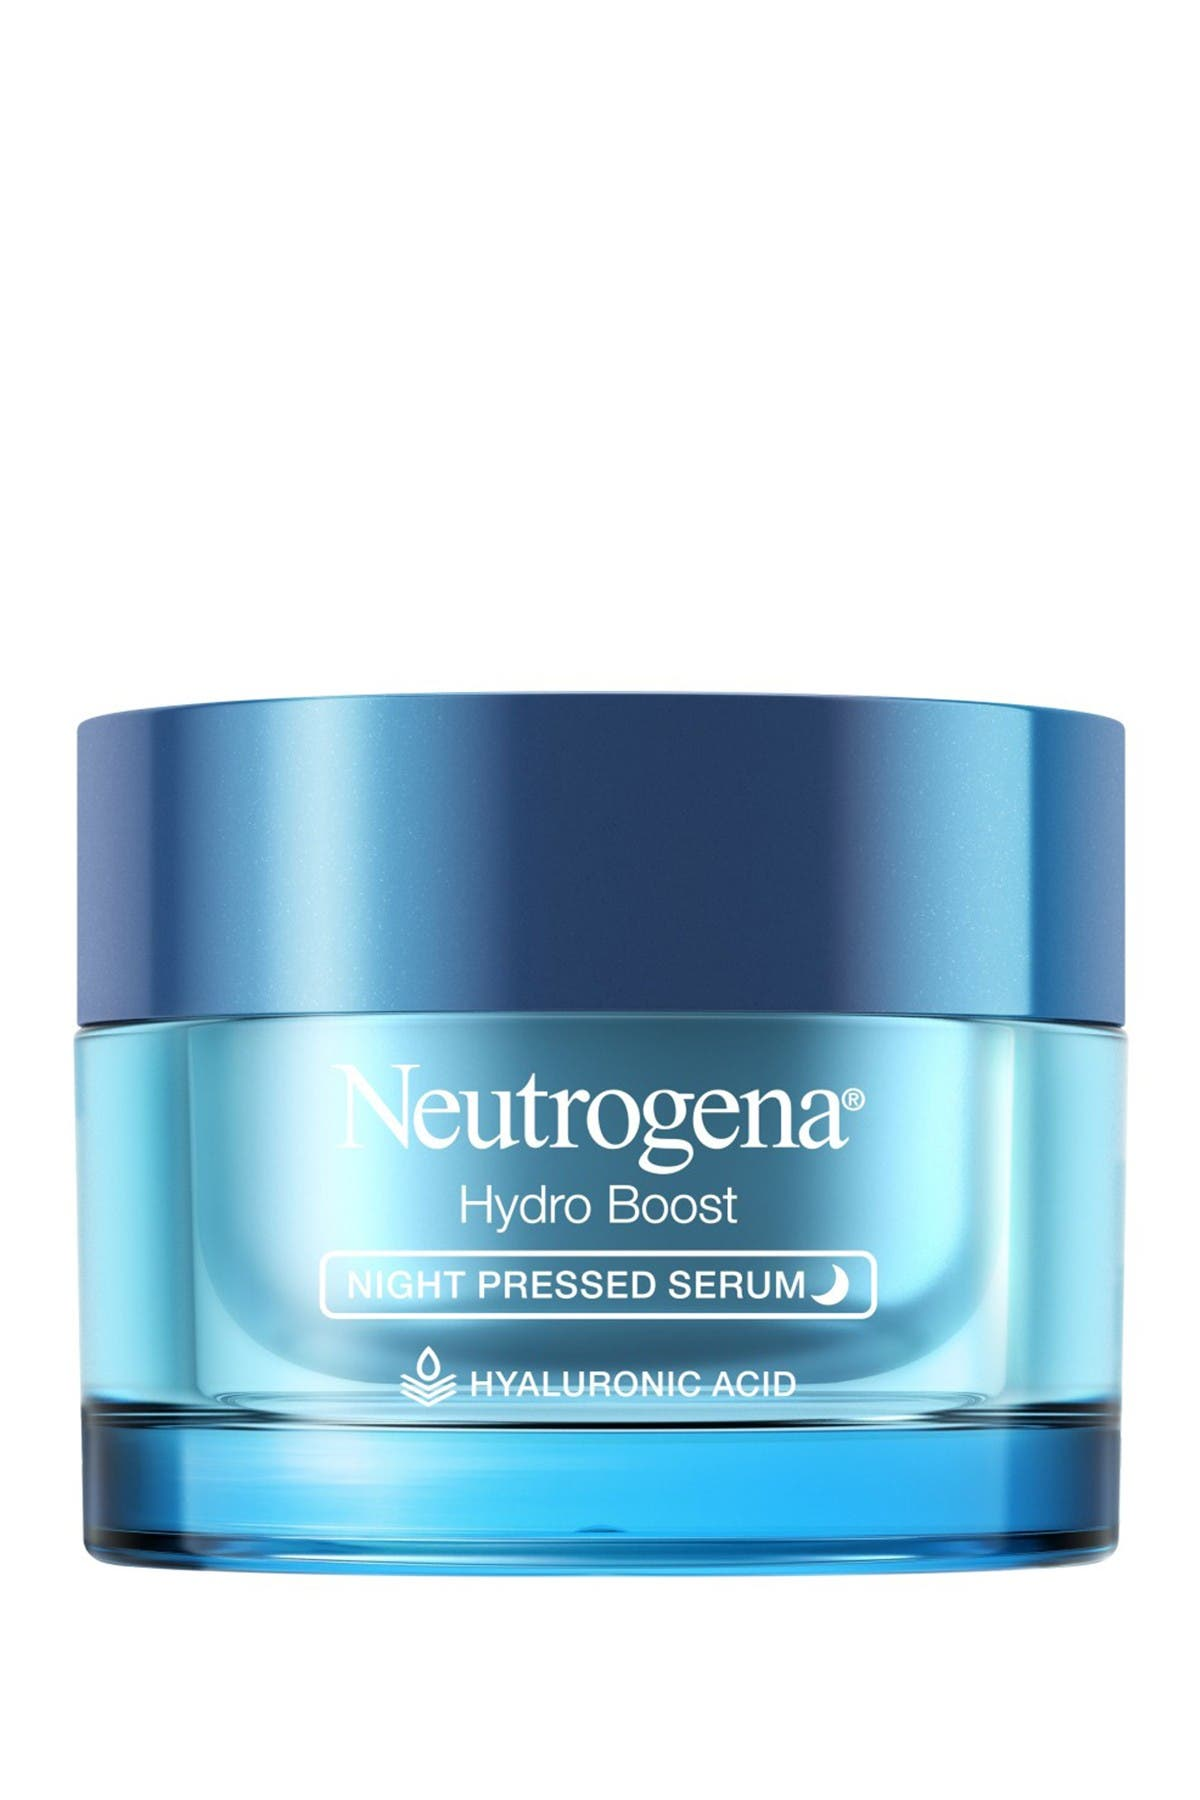 Image of Neutrogena Hydro Boost Hyaluronic Acid Pressed Night Serum - 1.7 oz.